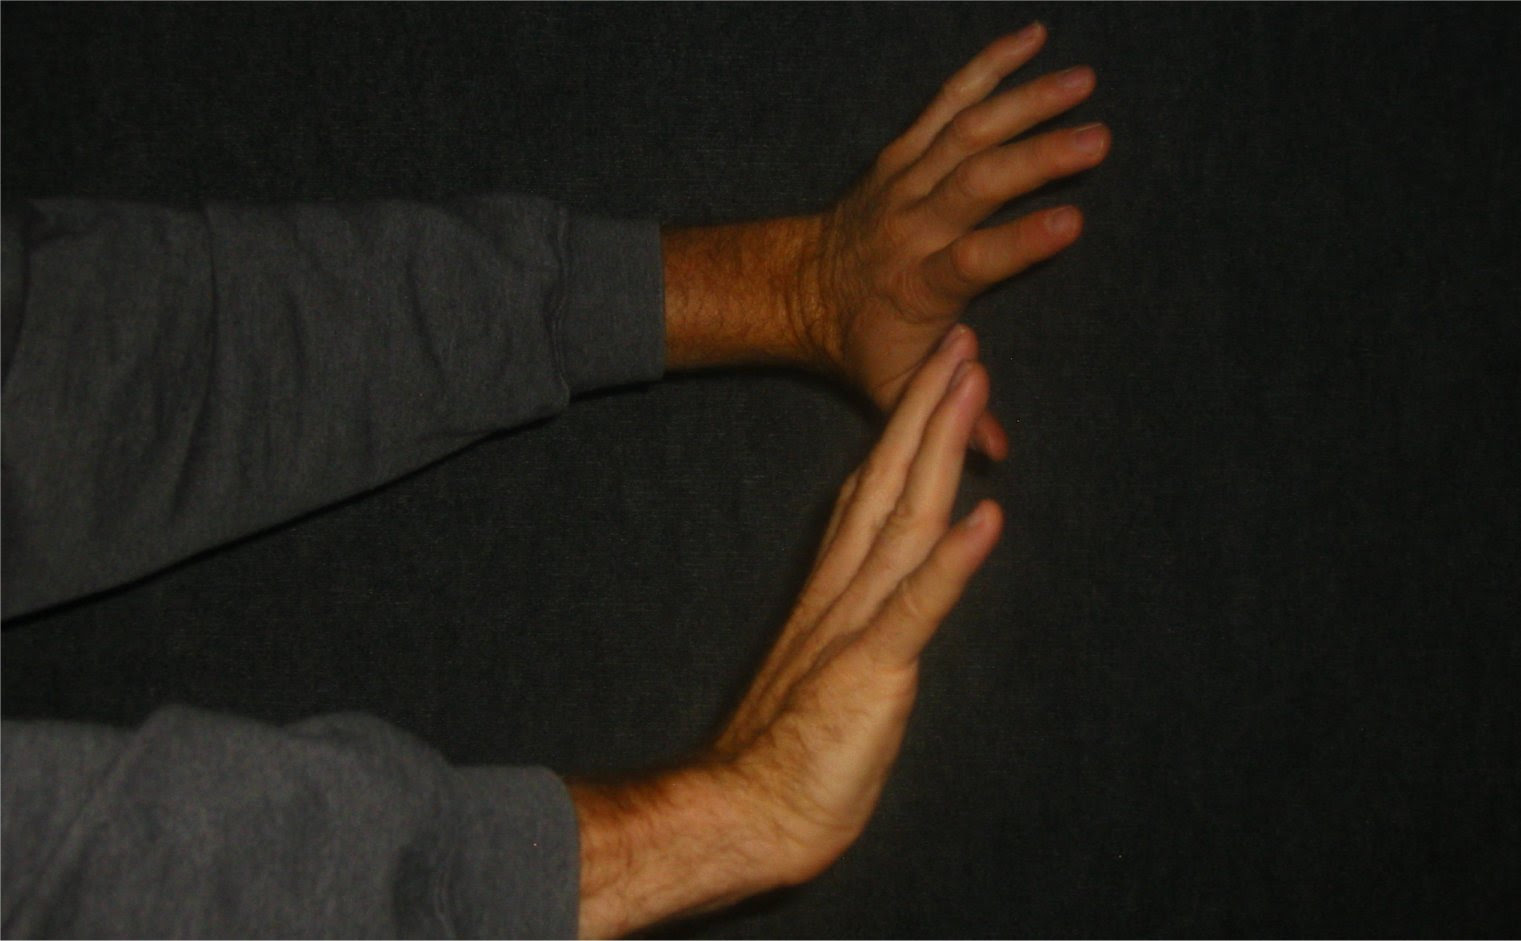 Shoving hangs against a grey background - soul-amp.com